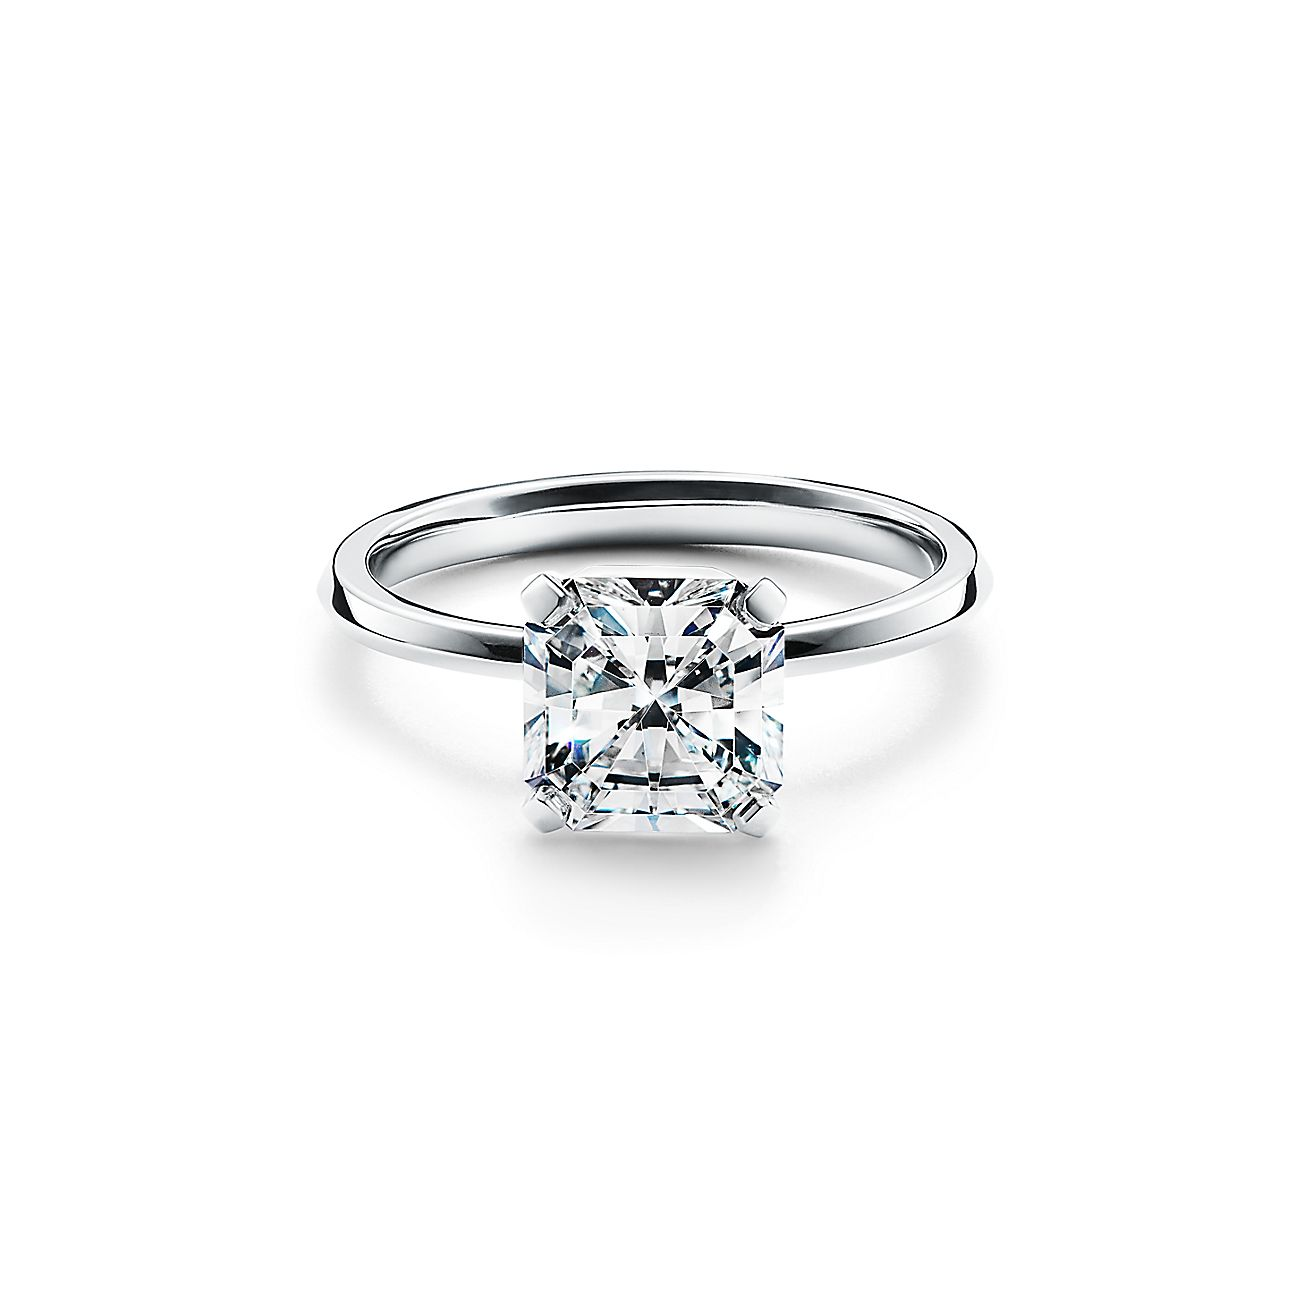 Tiffany True Engagement Ring With A Tiffany True Diamond In Platinum